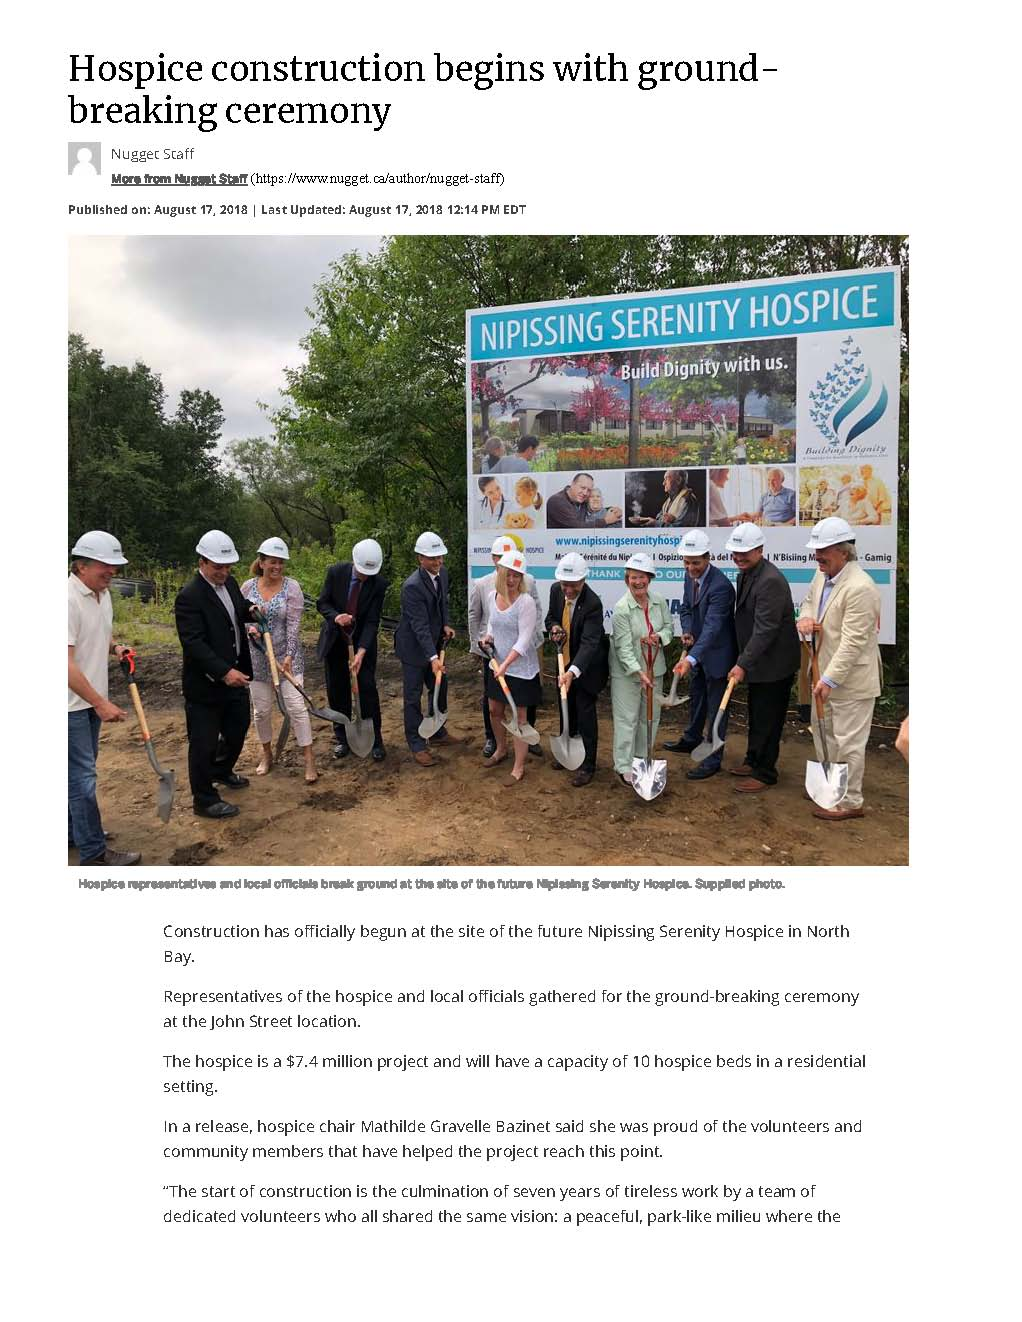 Hospice construction begins with ground-breaking ceremony _ North Bay Nugget_Page_1.jpg